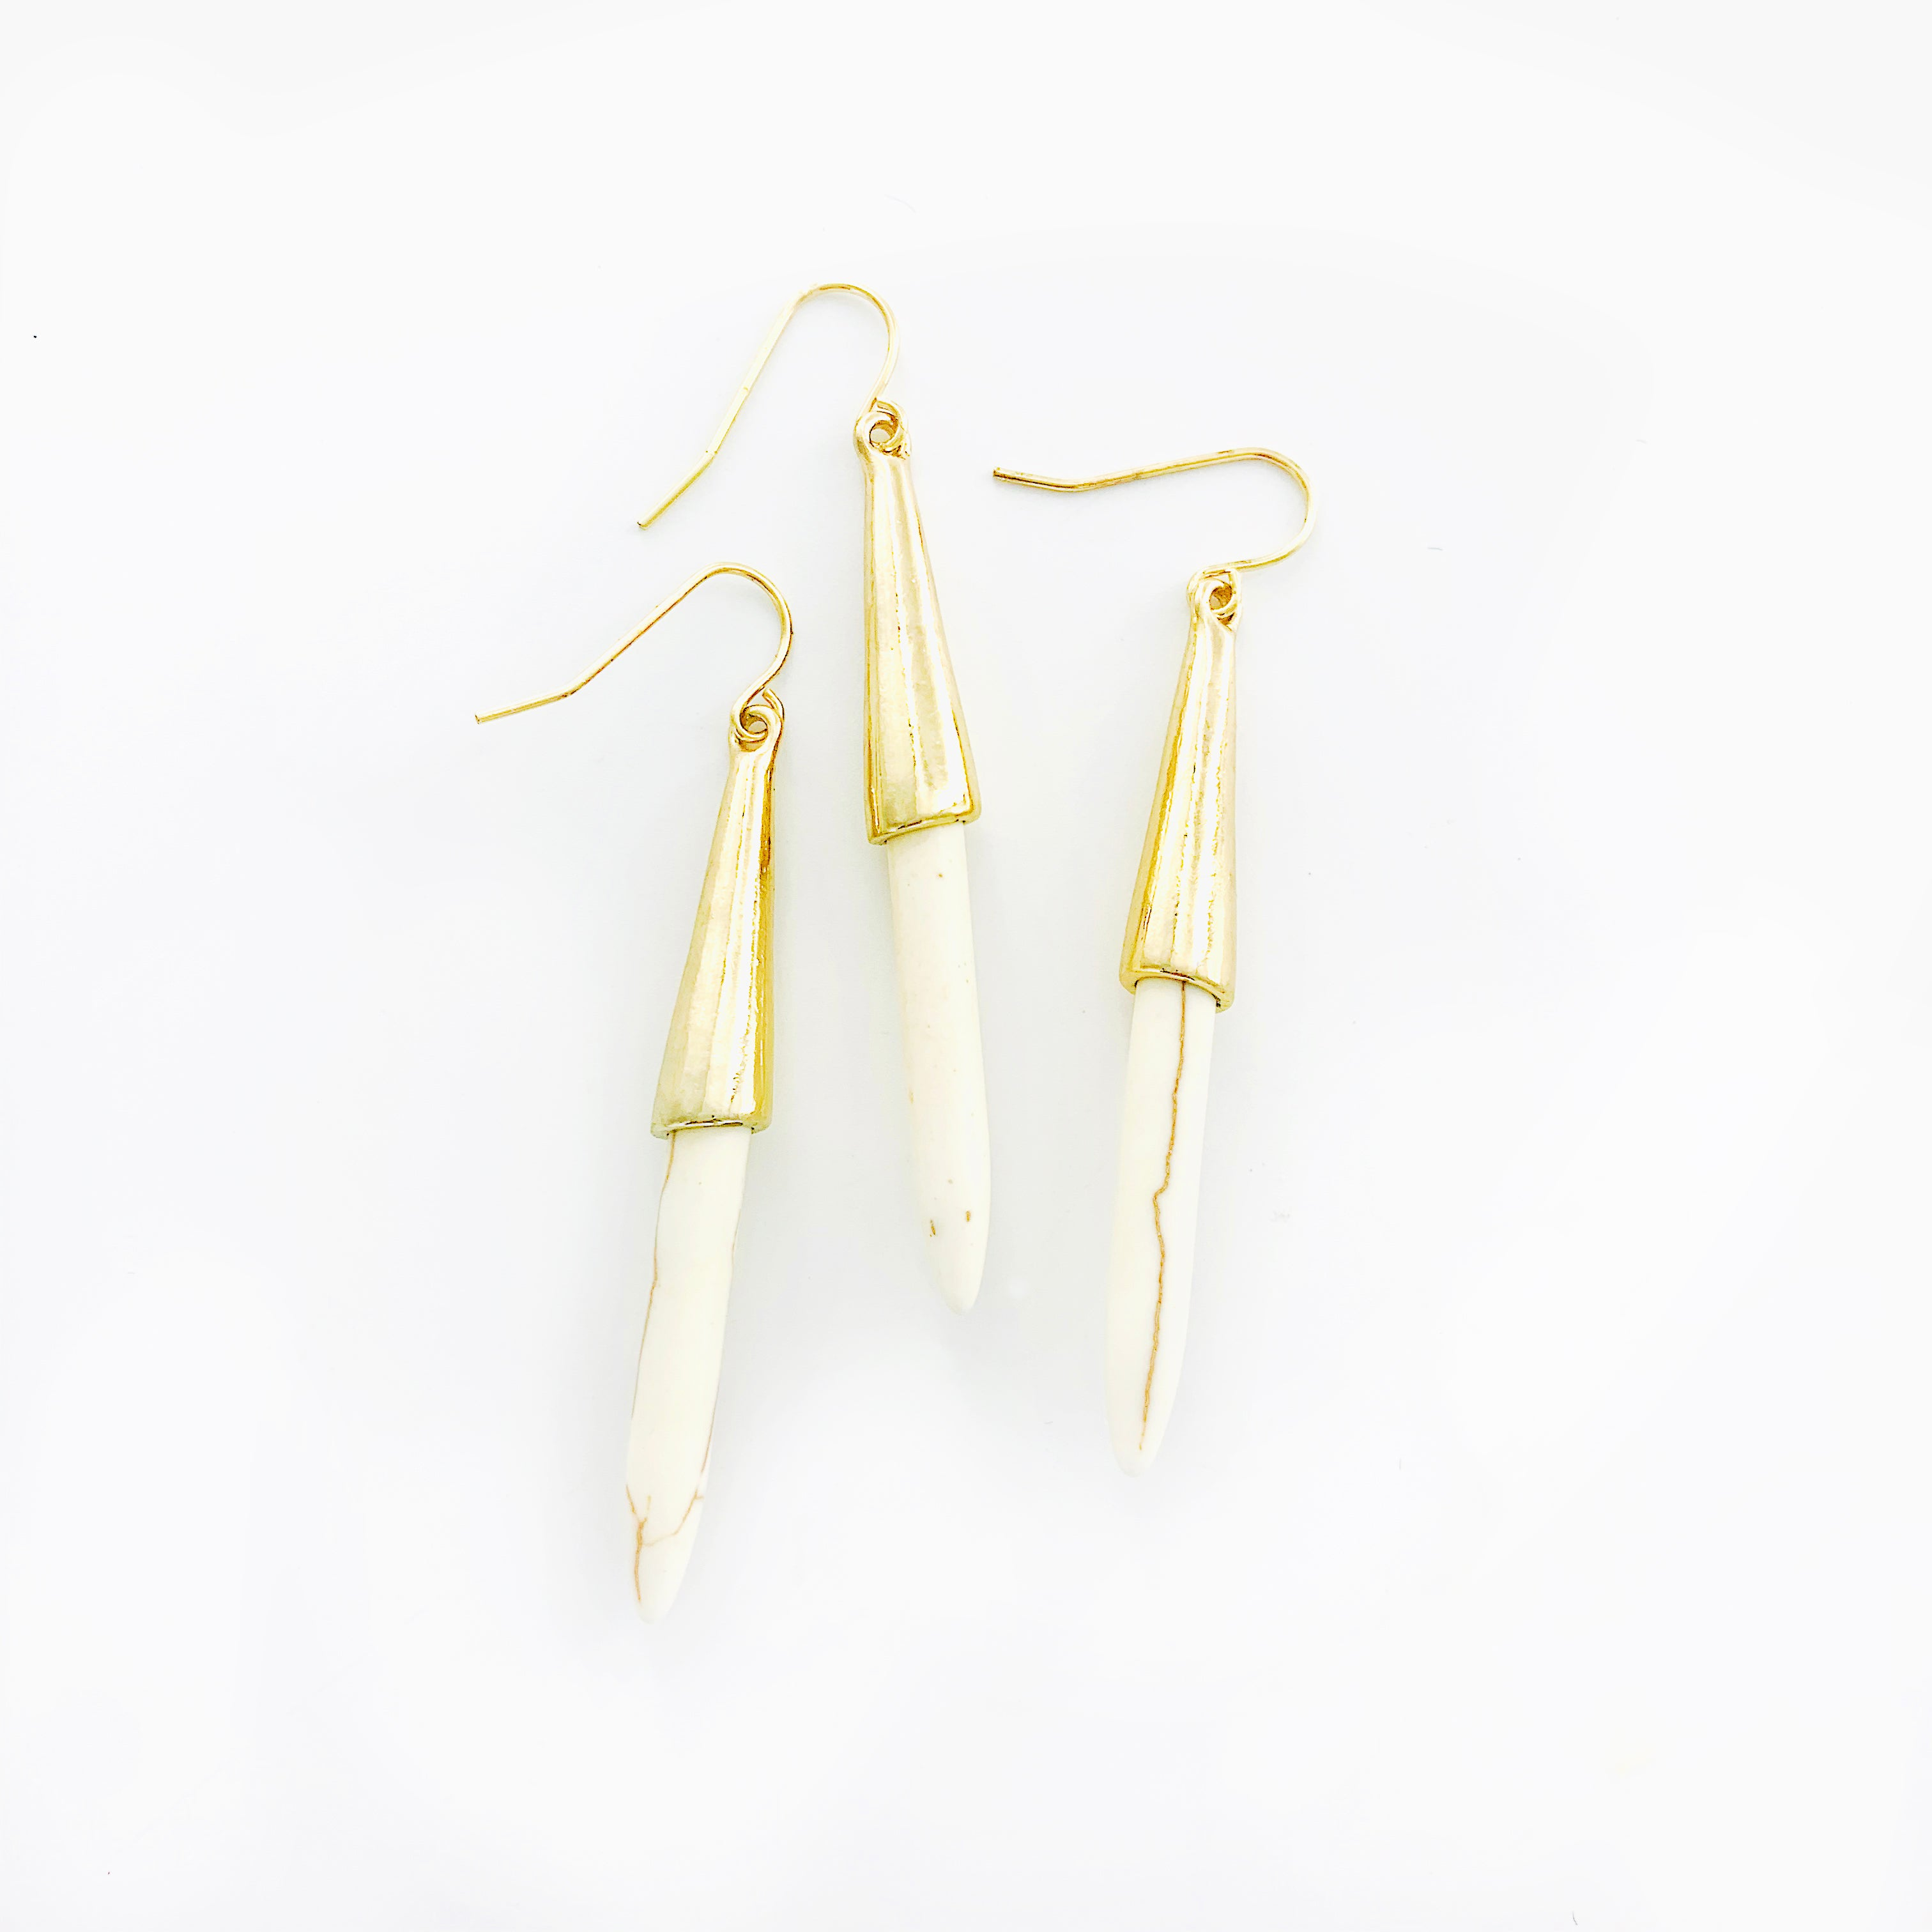 Gold dangling earrings with white marble